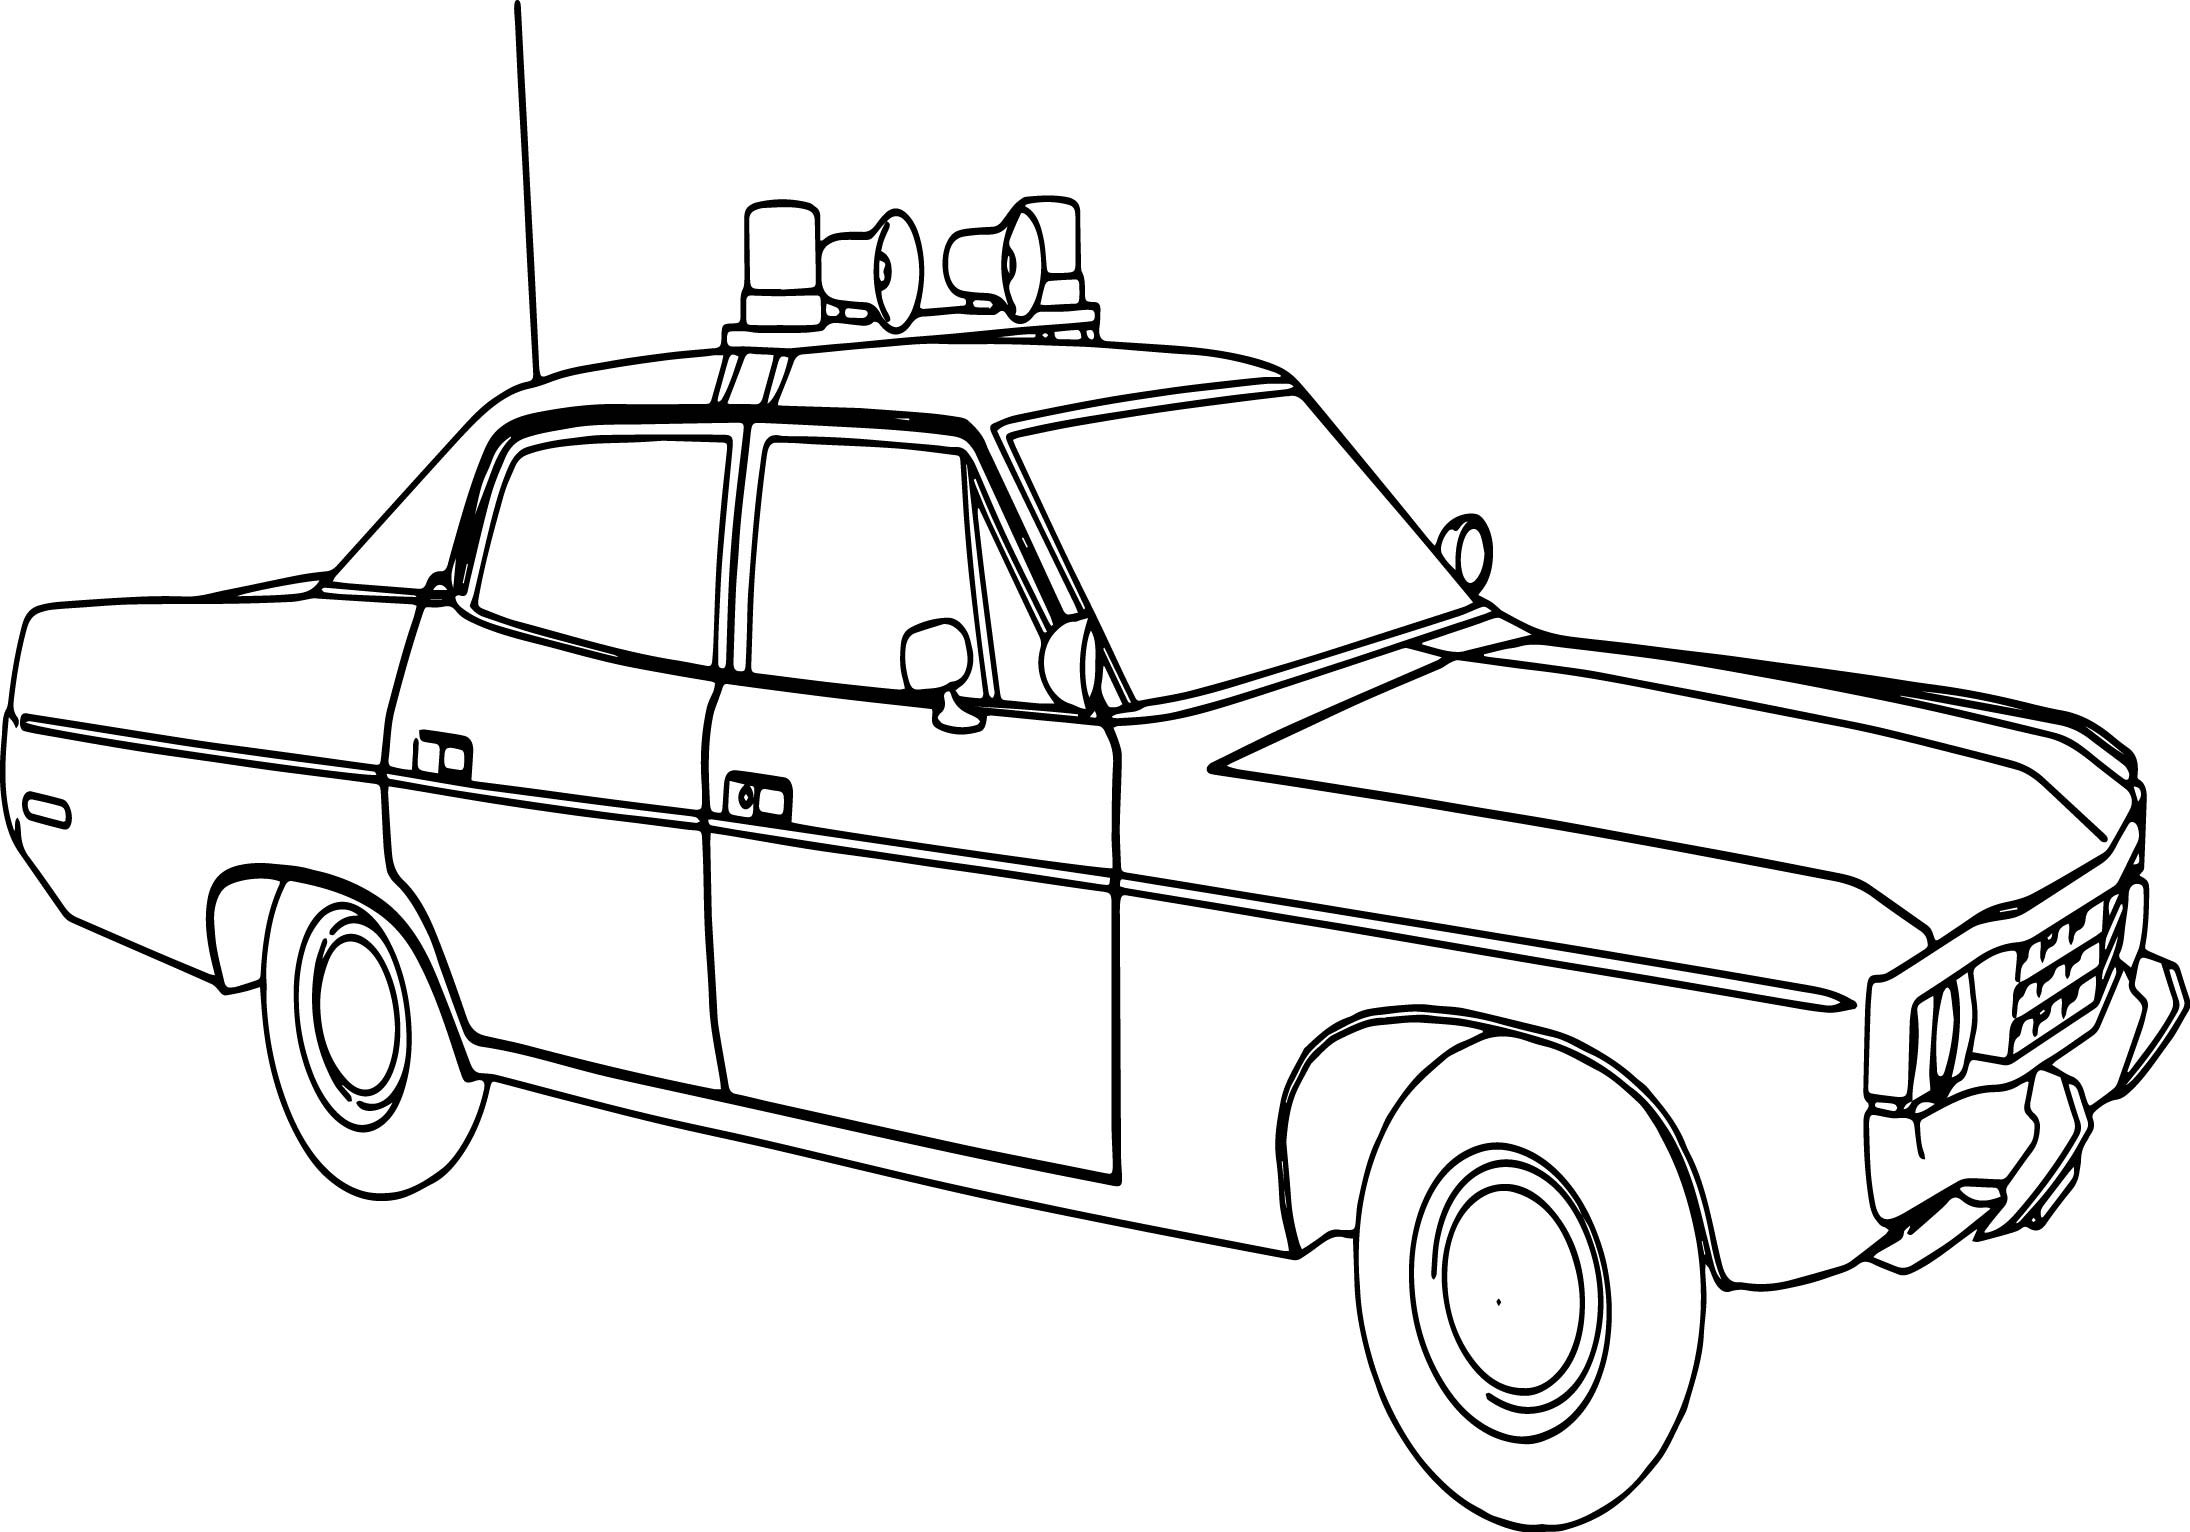 old fashioned car coloring pages awesome lighting mcqueen in disney cars coloring page by fashioned car coloring pages old